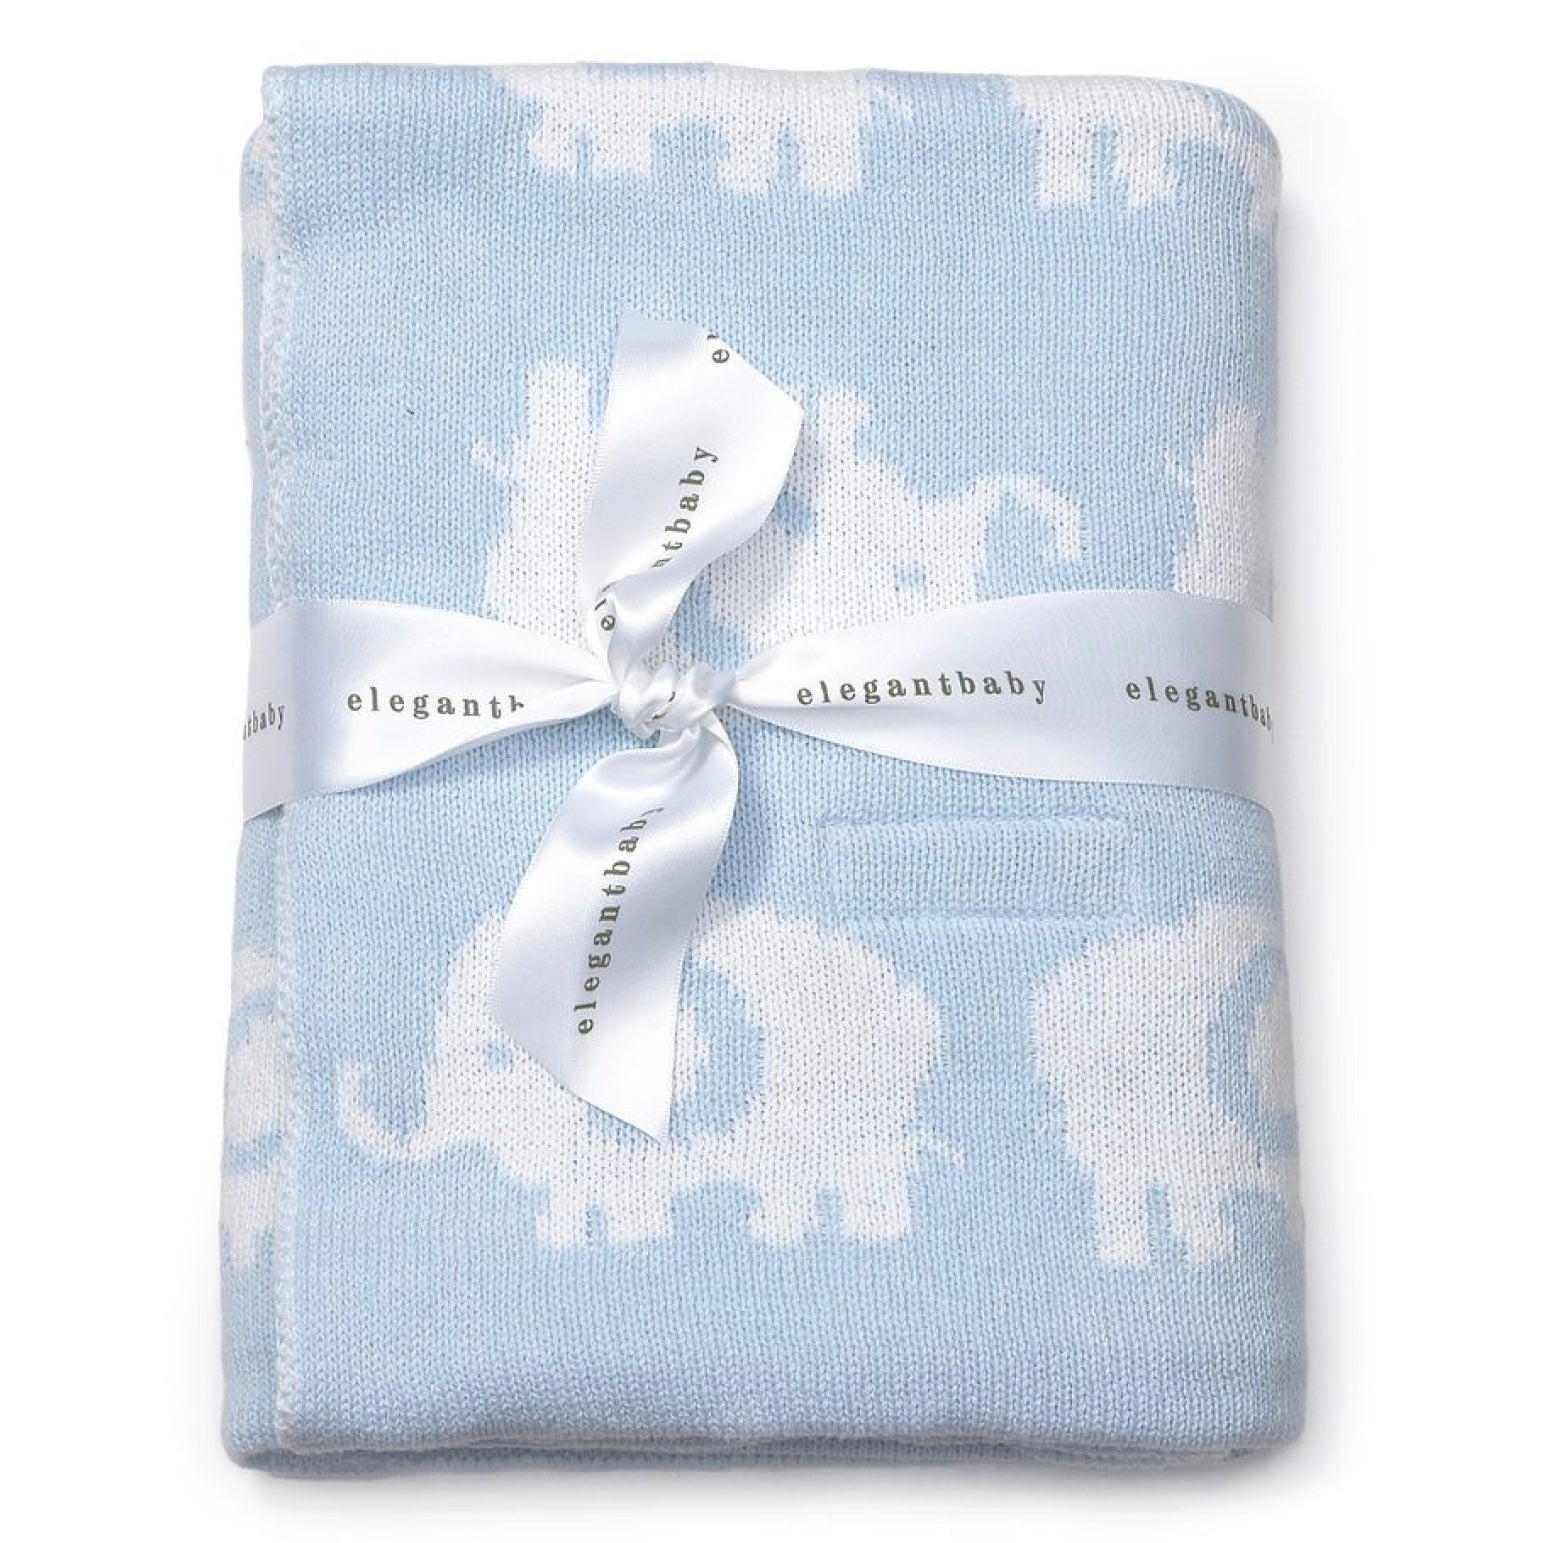 Elegant Baby Elephant Blue Knit Blanket, EB-Elegant Baby, Putti Fine Furnishings